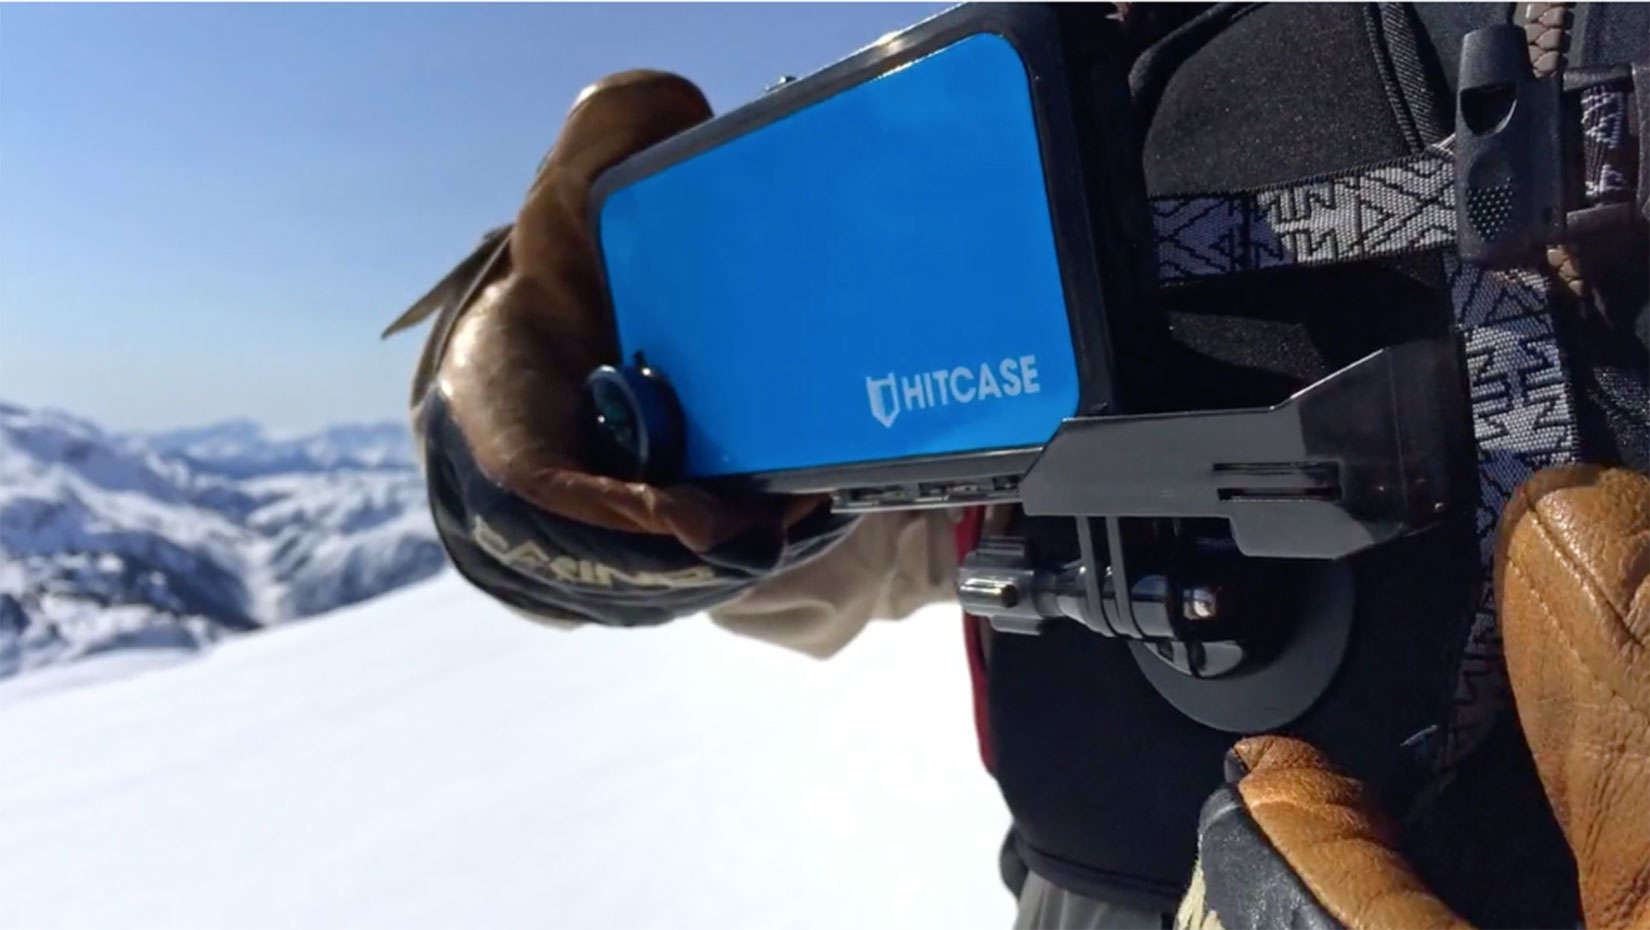 A skier used a mount to hold an iPhone 6 with a HITCASE for filming on a downhill run.